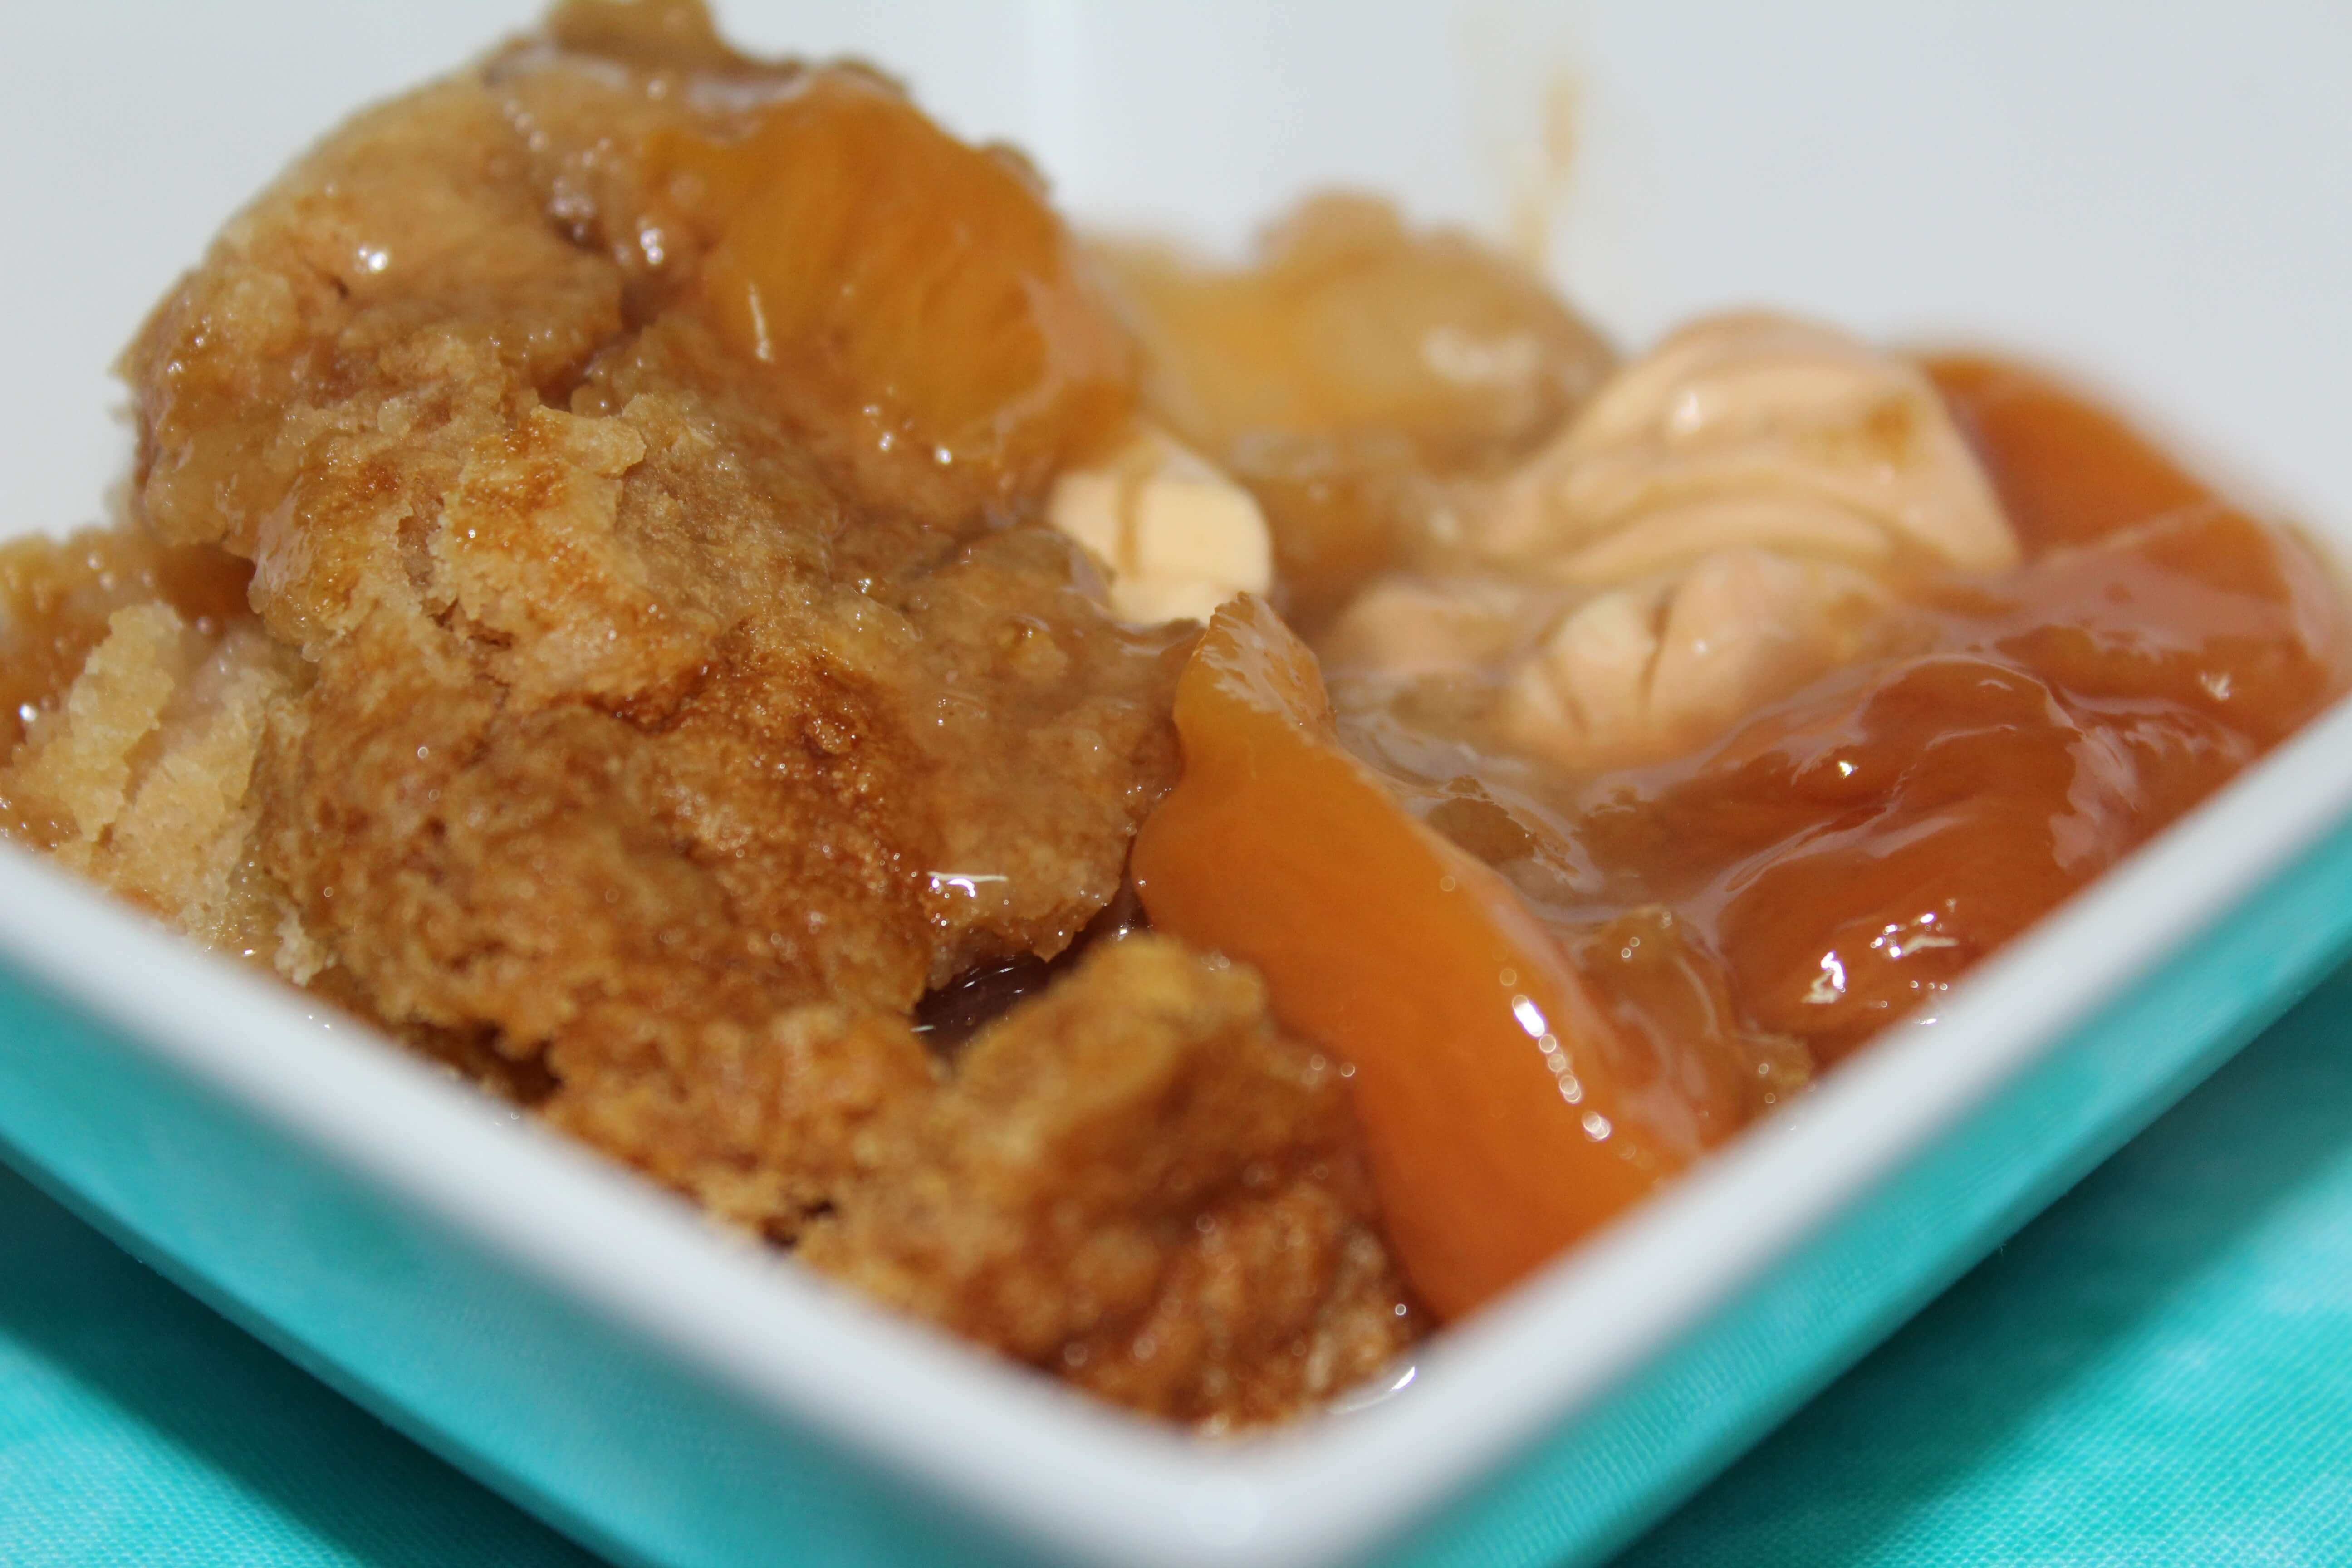 Peaches & Cream Cobbler! Get in my belly now!